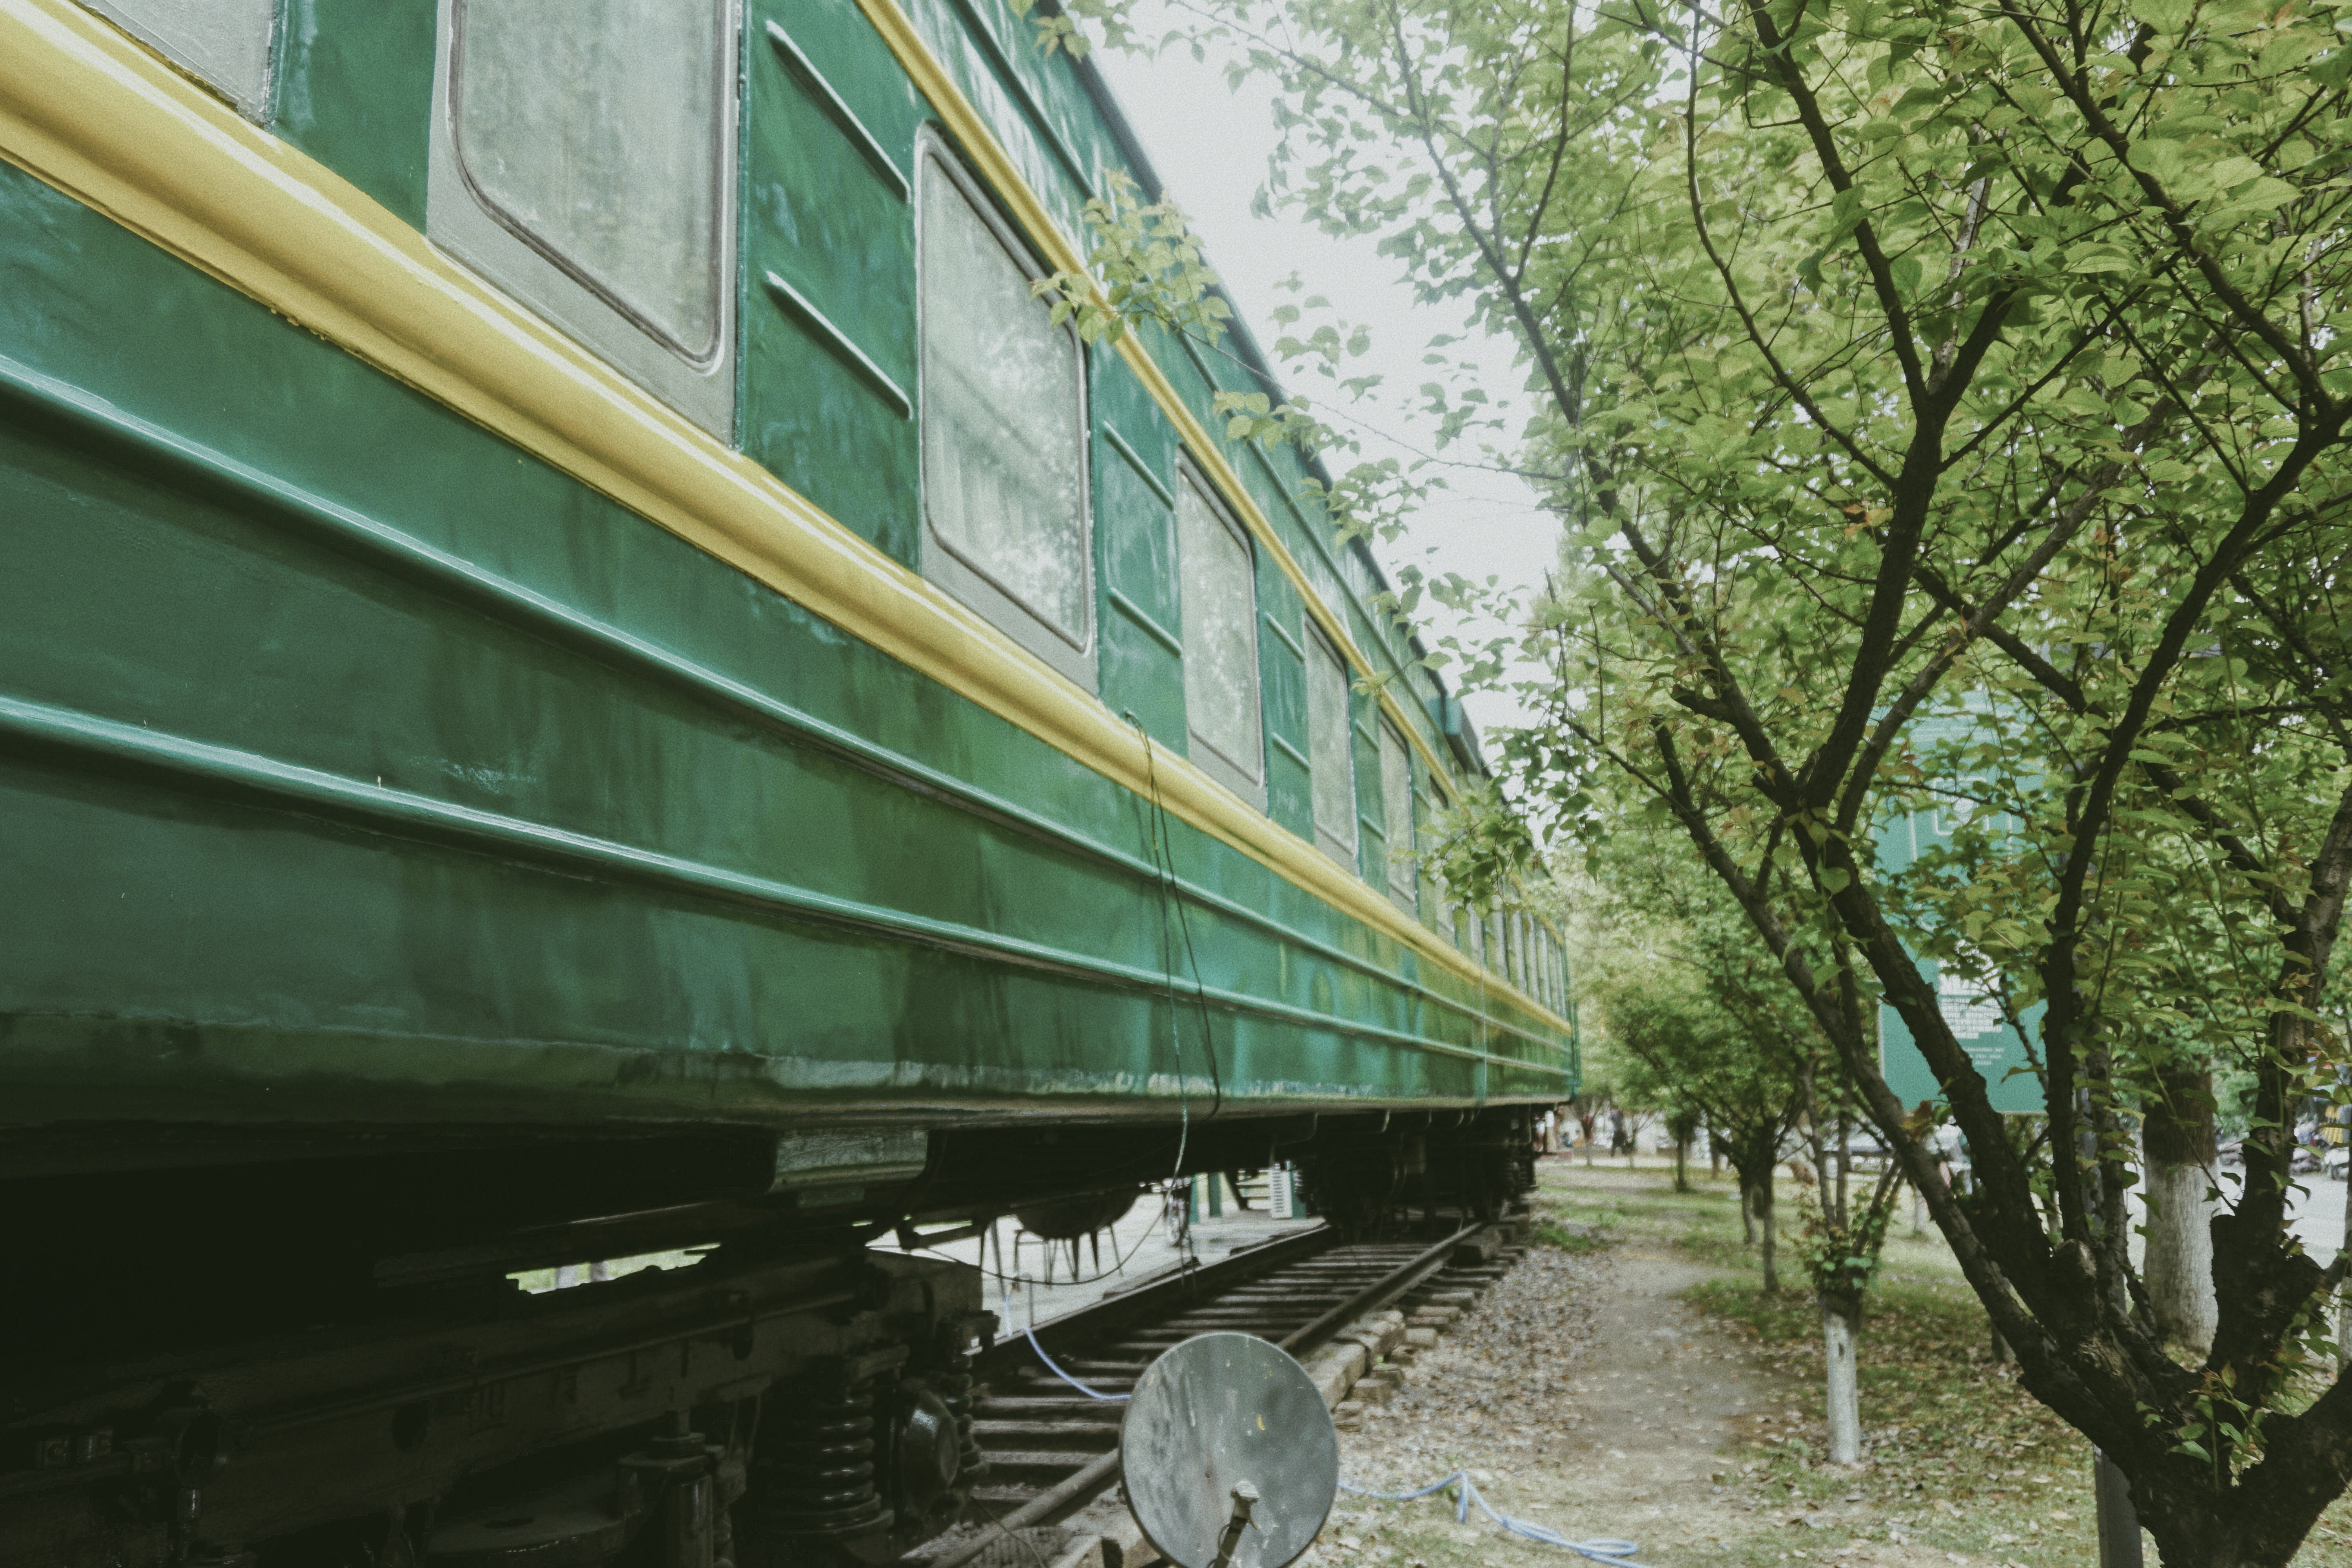 Green and Yellow Train